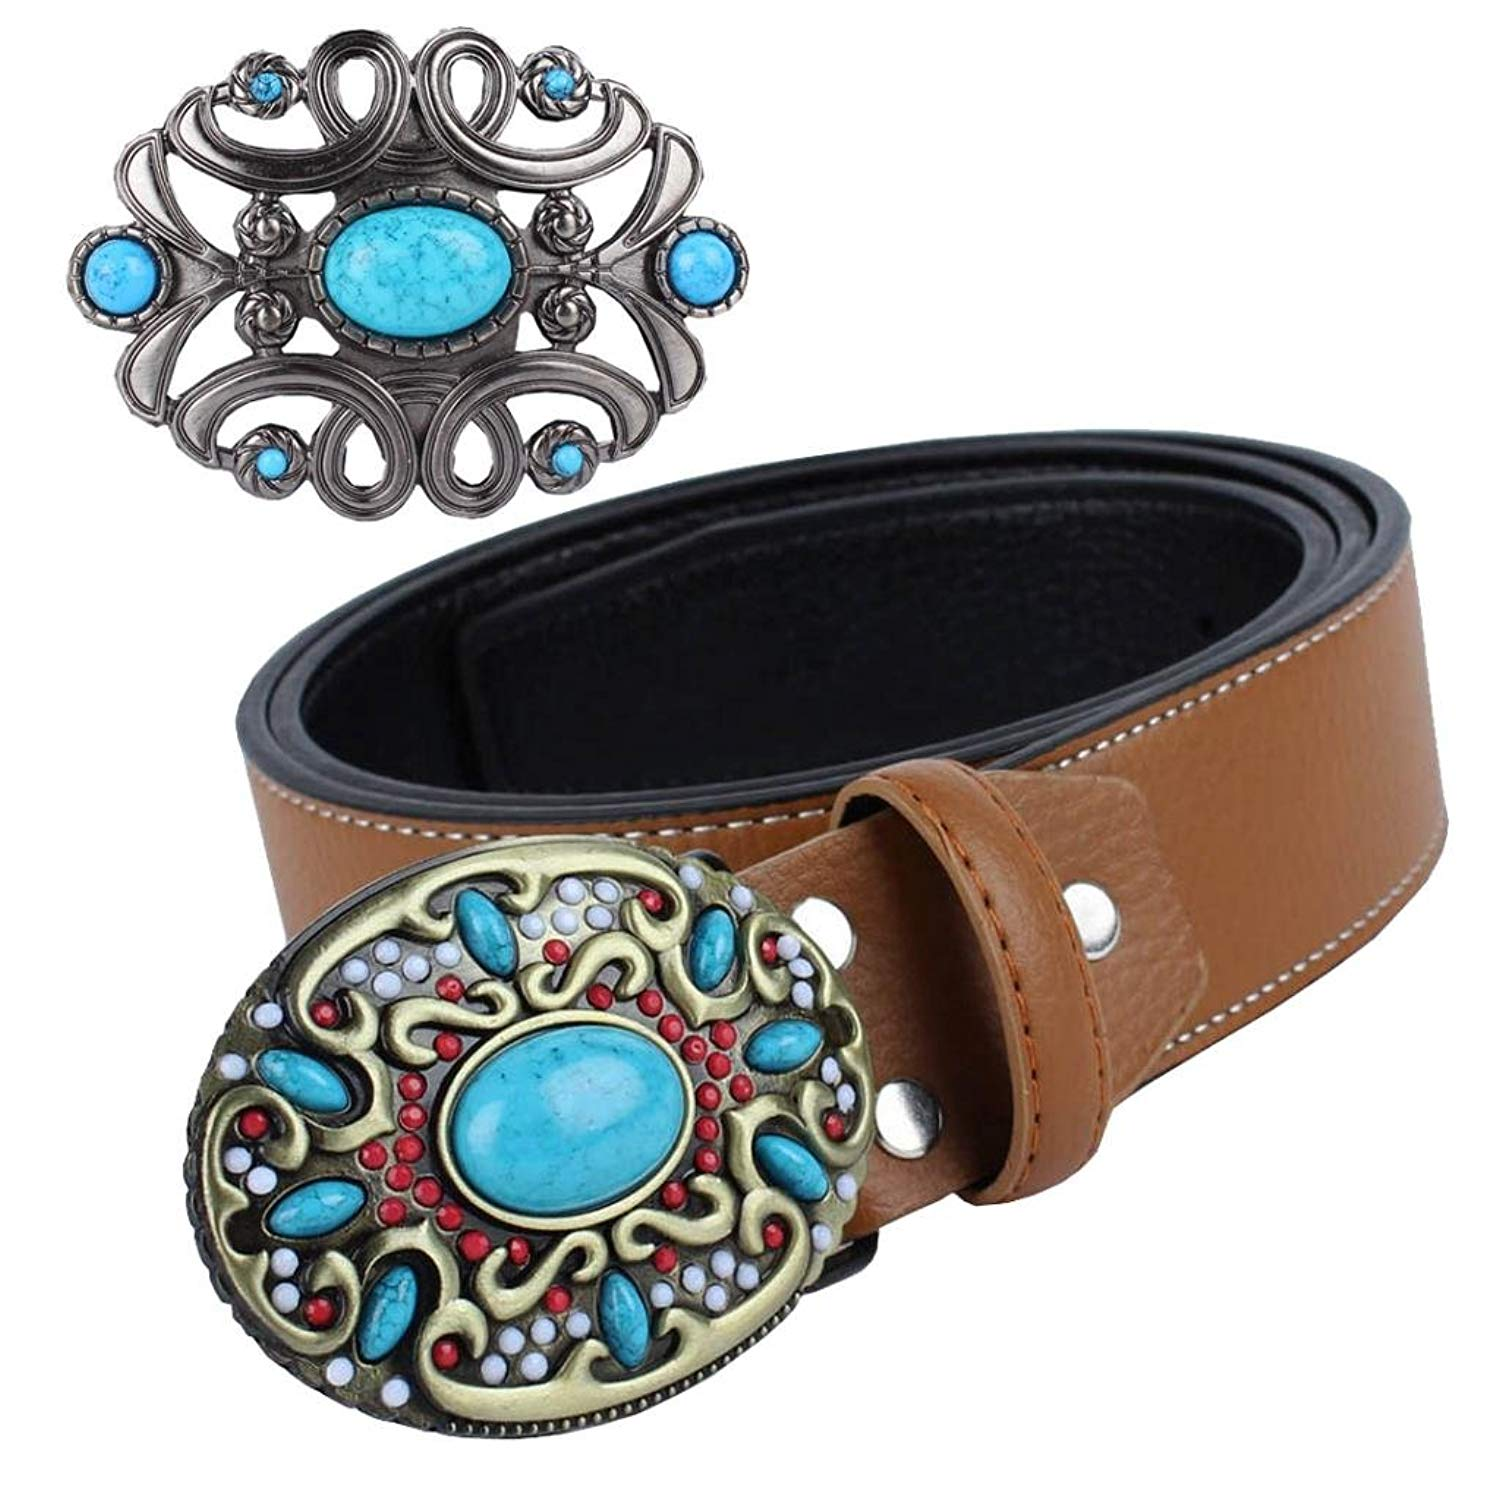 Fashion Mens Good Plating Metal Gold Color Belt Buckle Men Woman Floral Hebillas With 4cm Belts Oval Luxury Jeans Accessories Back To Search Resultshome & Garden Buckles & Hooks